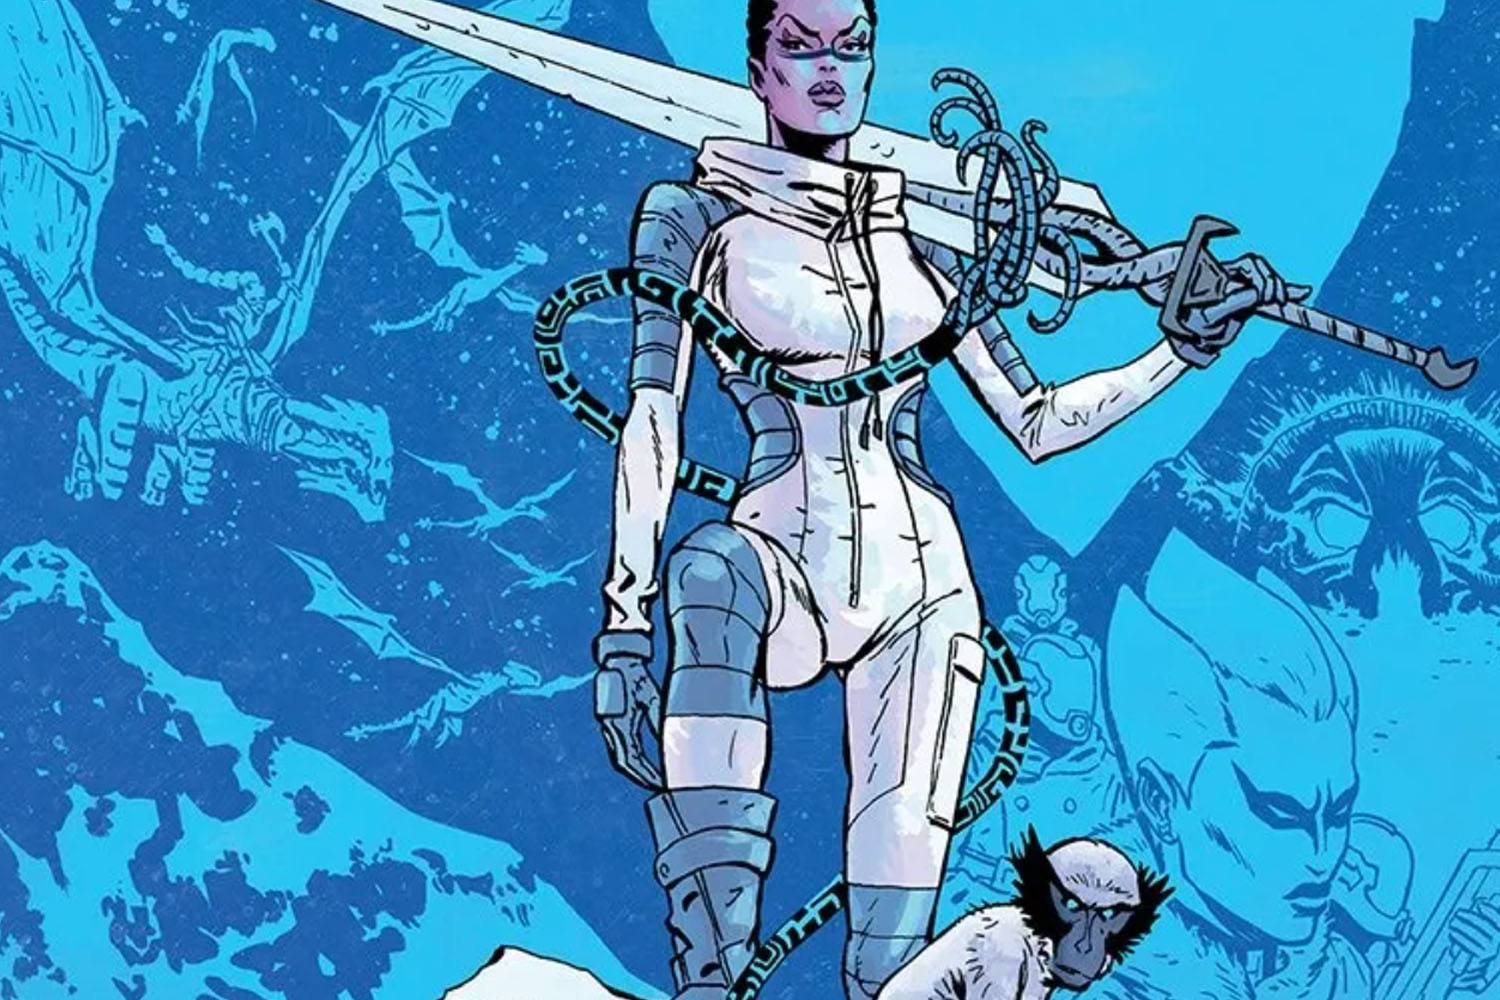 'Everfrost' #1 creates a bold and daring new world